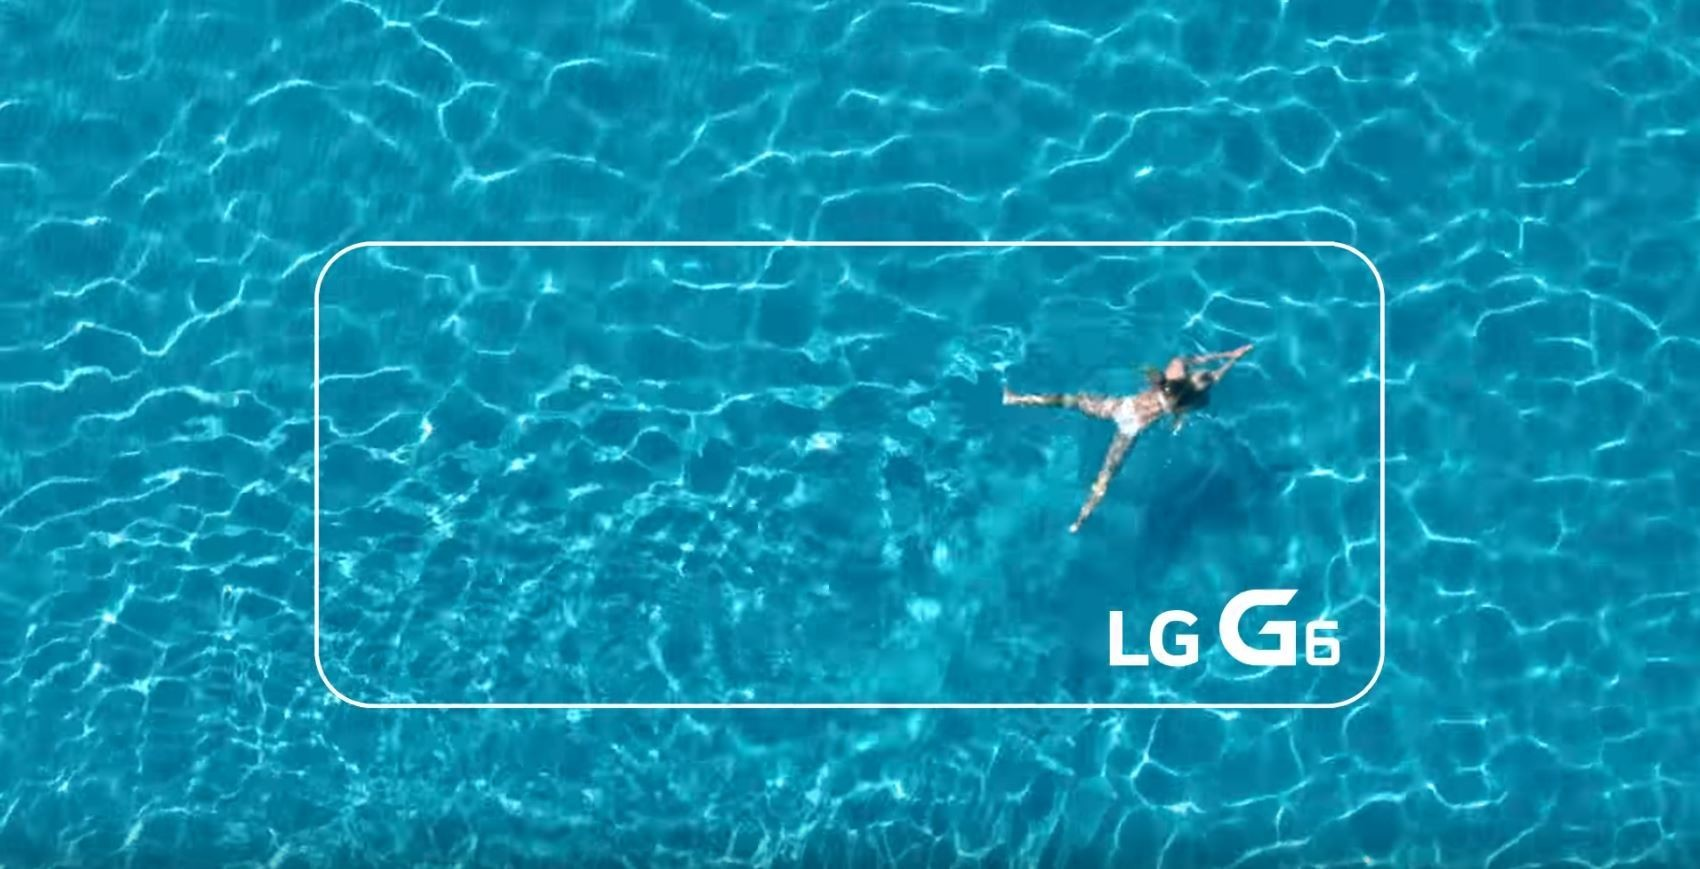 LG teases upcoming G6 with two new cryptic videos